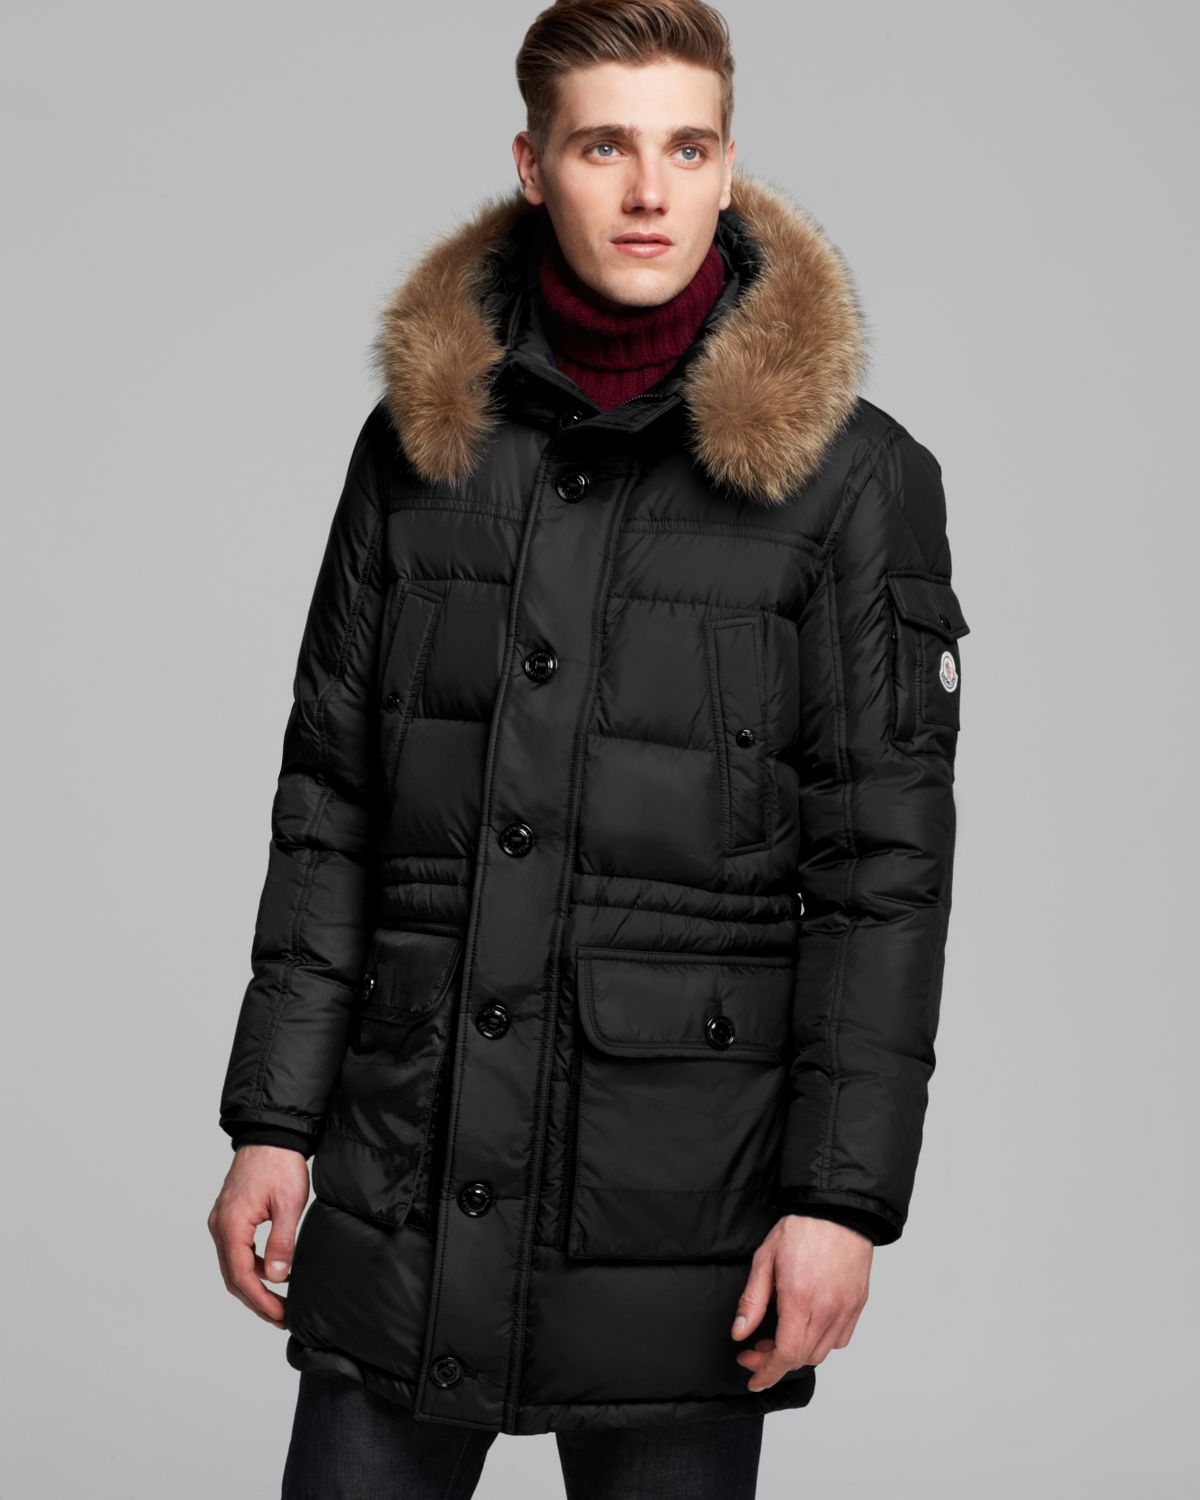 Find great deals on eBay for Mens Fur Parka in Men's Coats And Jackets. Shop with confidence. Find great deals on eBay for Mens Fur Parka in Men's Coats And Jackets. Mens Jacket Hooded Fur Collar Outdoor Thicken Warm Top Winter Outwear Parka Coat. $ Buy It Now. Free Shipping.